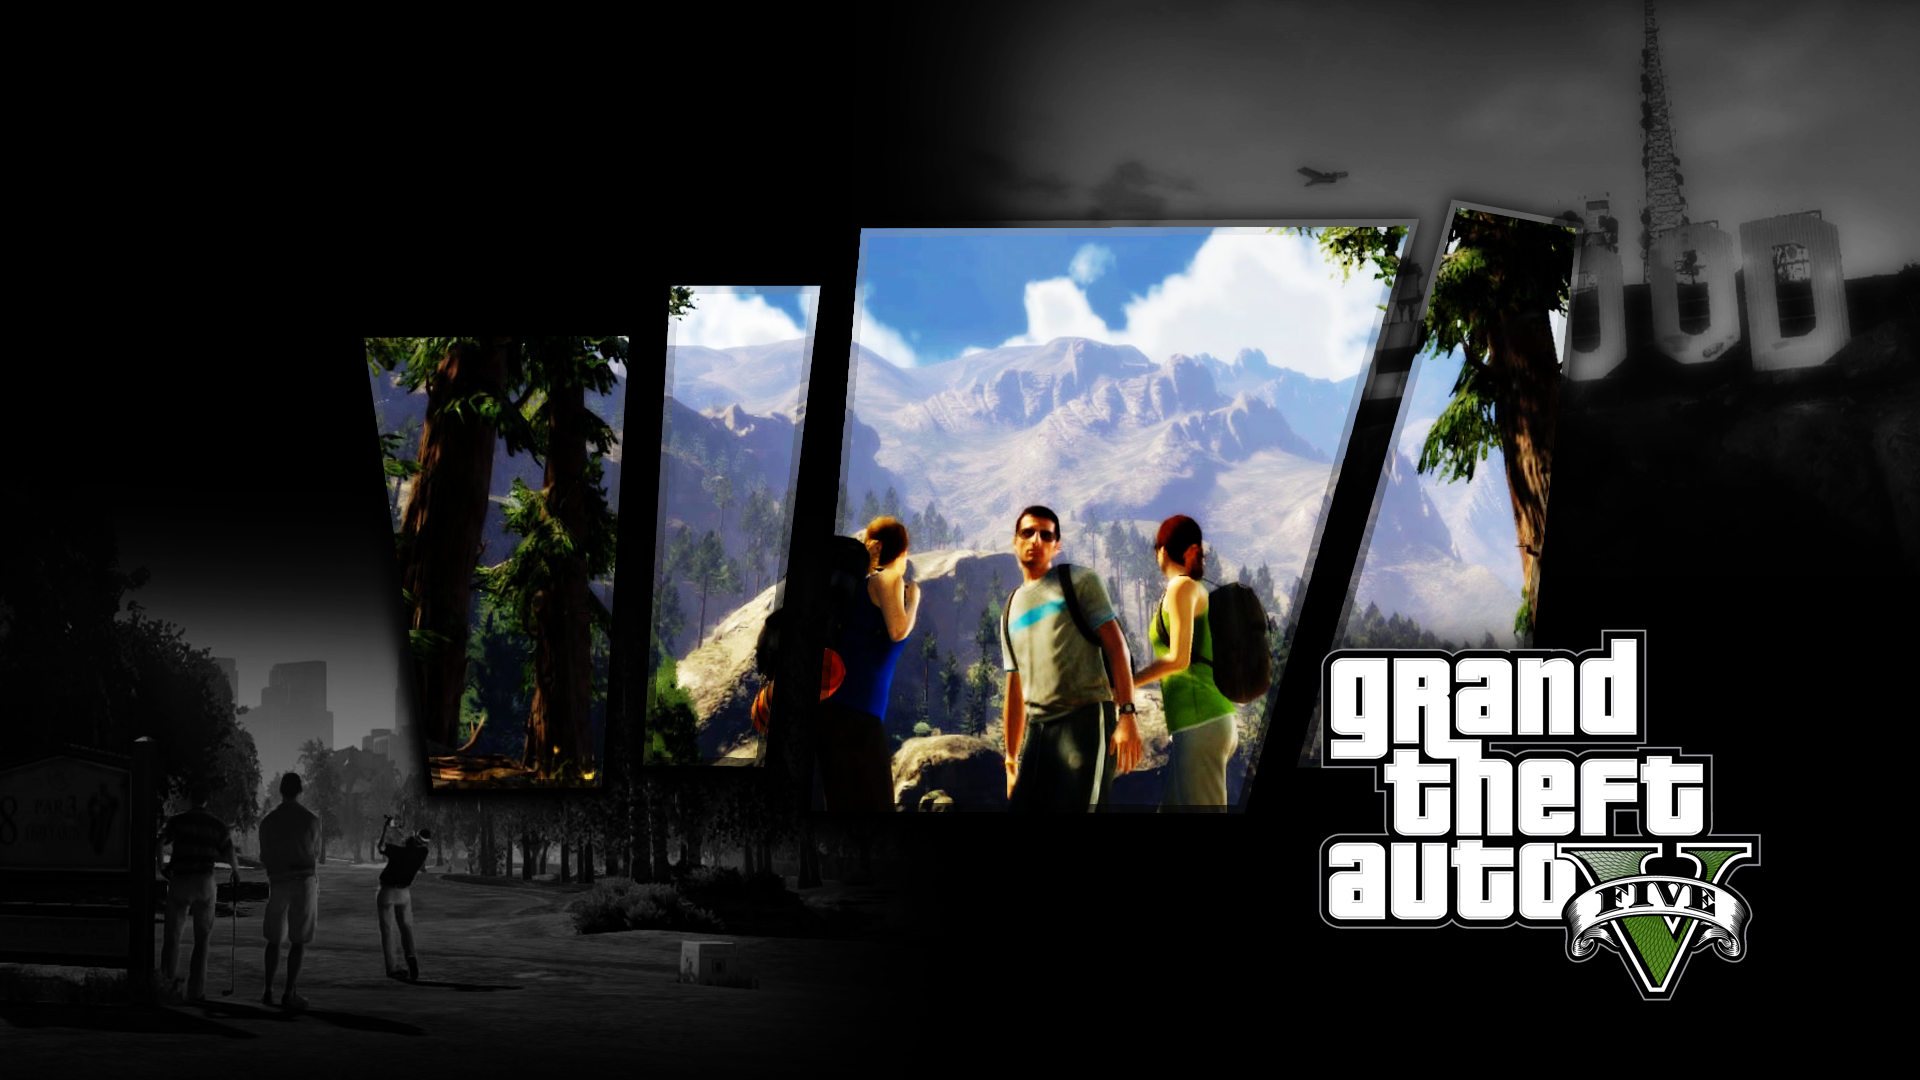 grand theft auto 5 wallpaper by ratedrdesigns d4pcbr8 1920x1080